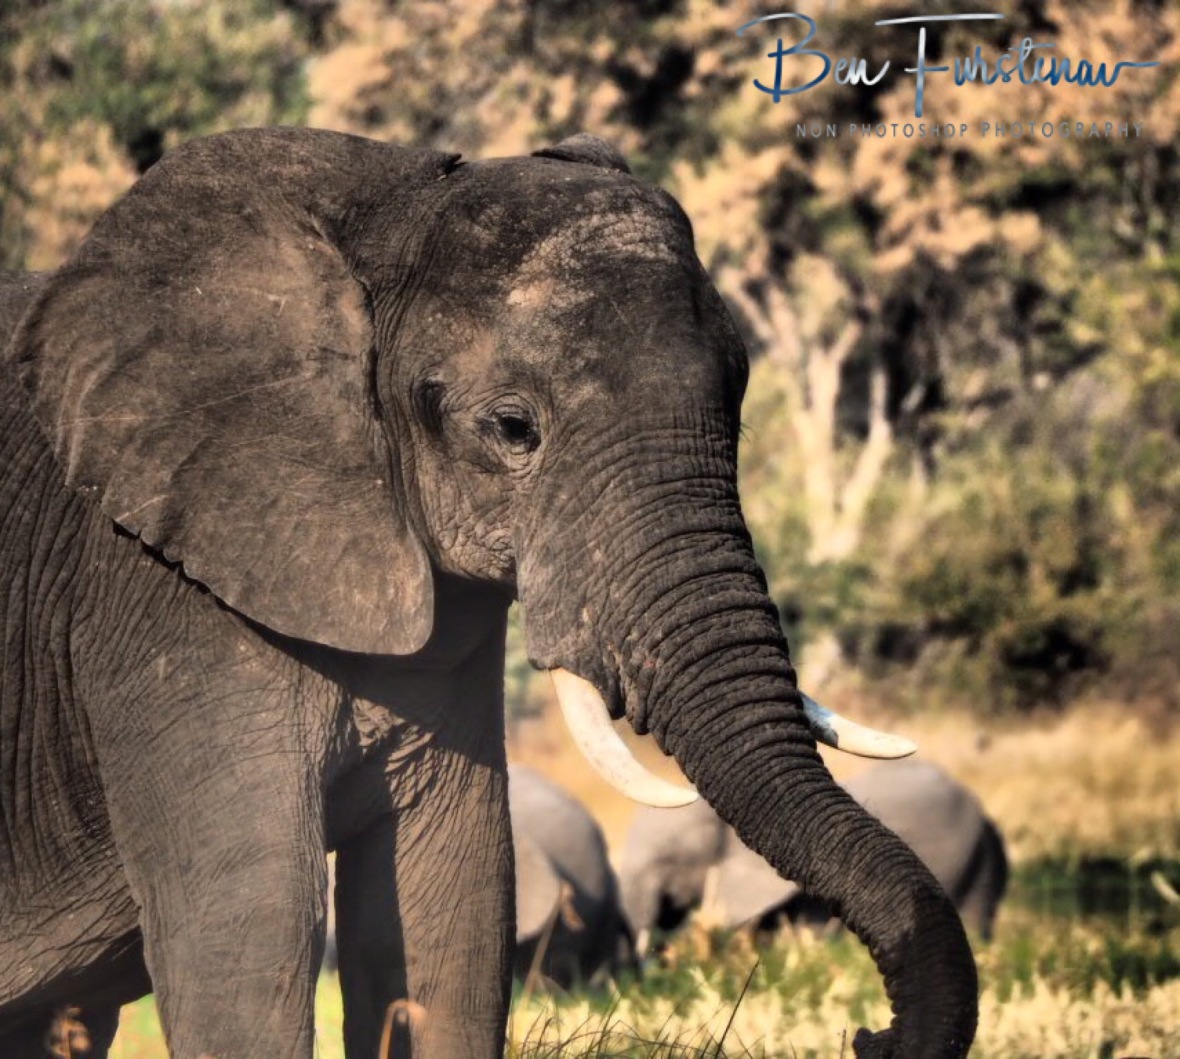 Surrounded by elephants, Moremi National Park, Botswana